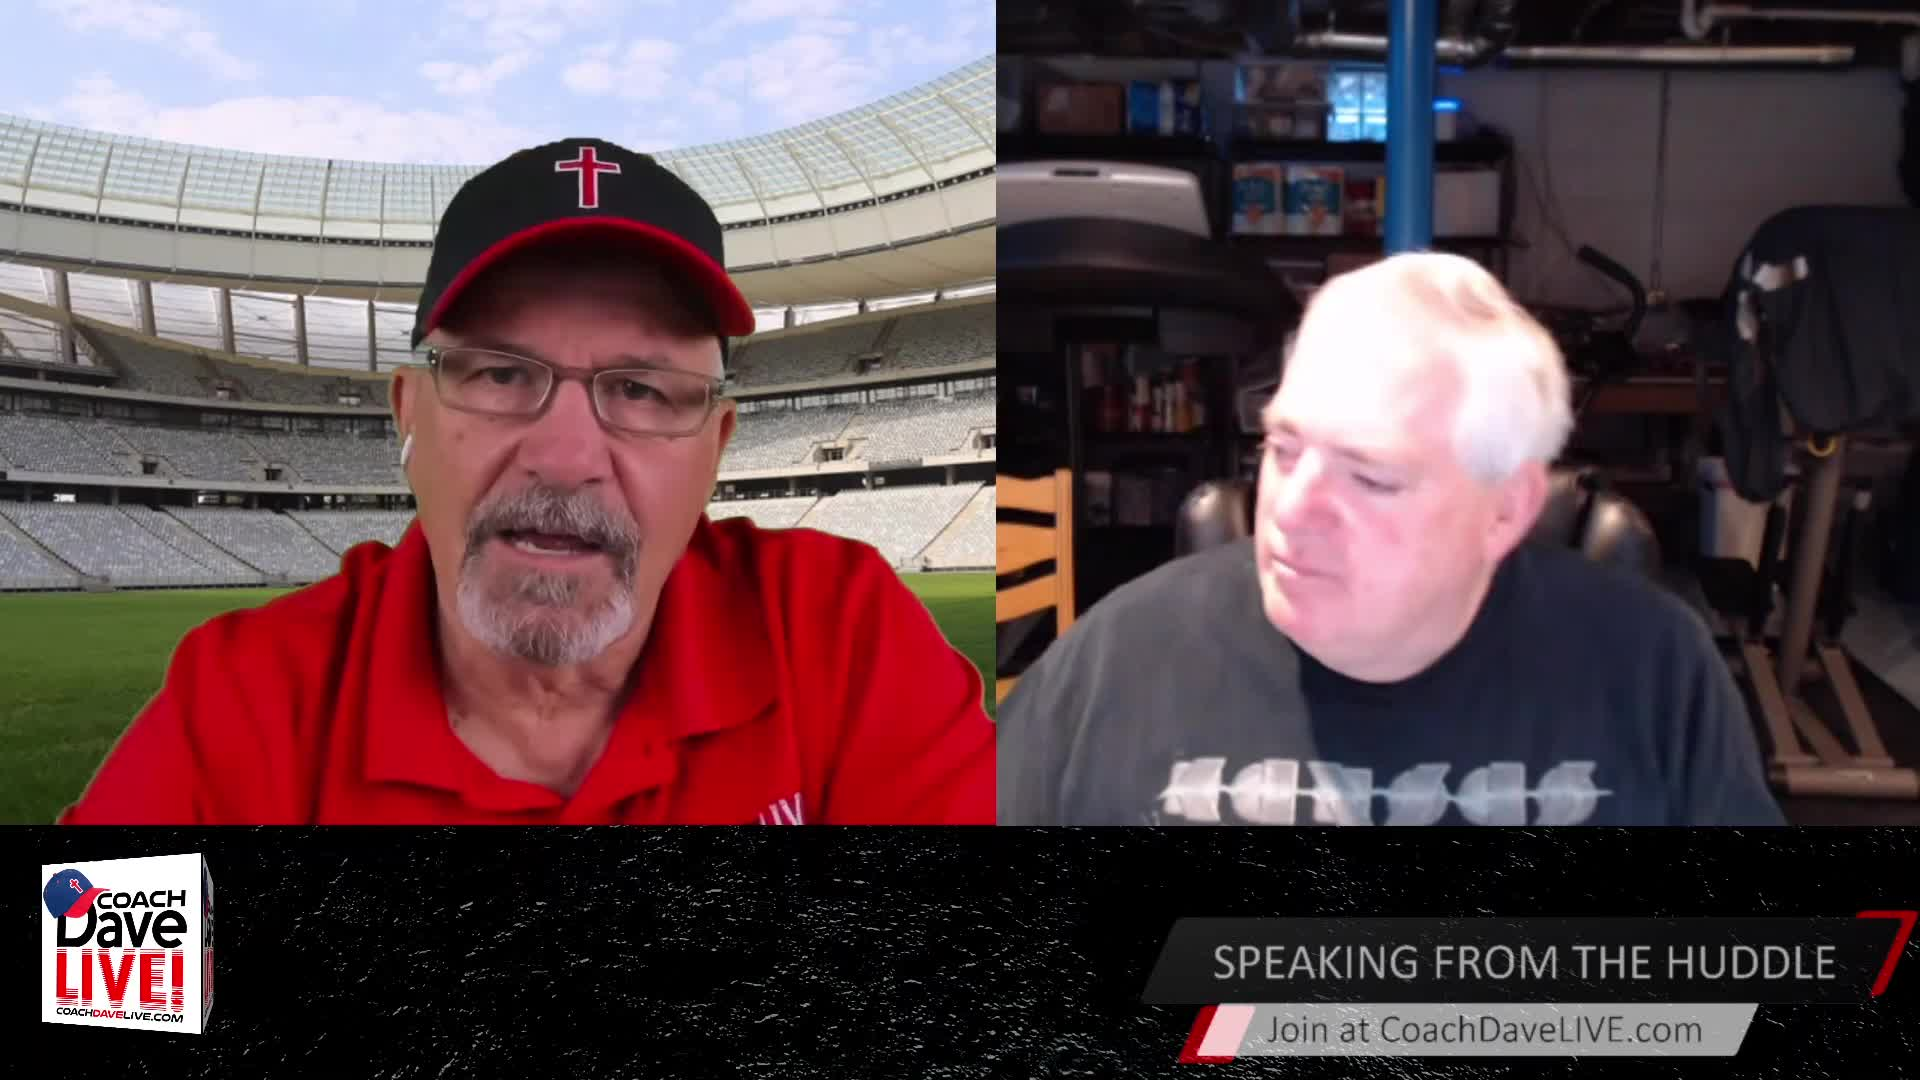 Coach Dave LIVE   4-21-2021   SOMETHING'S COMING!